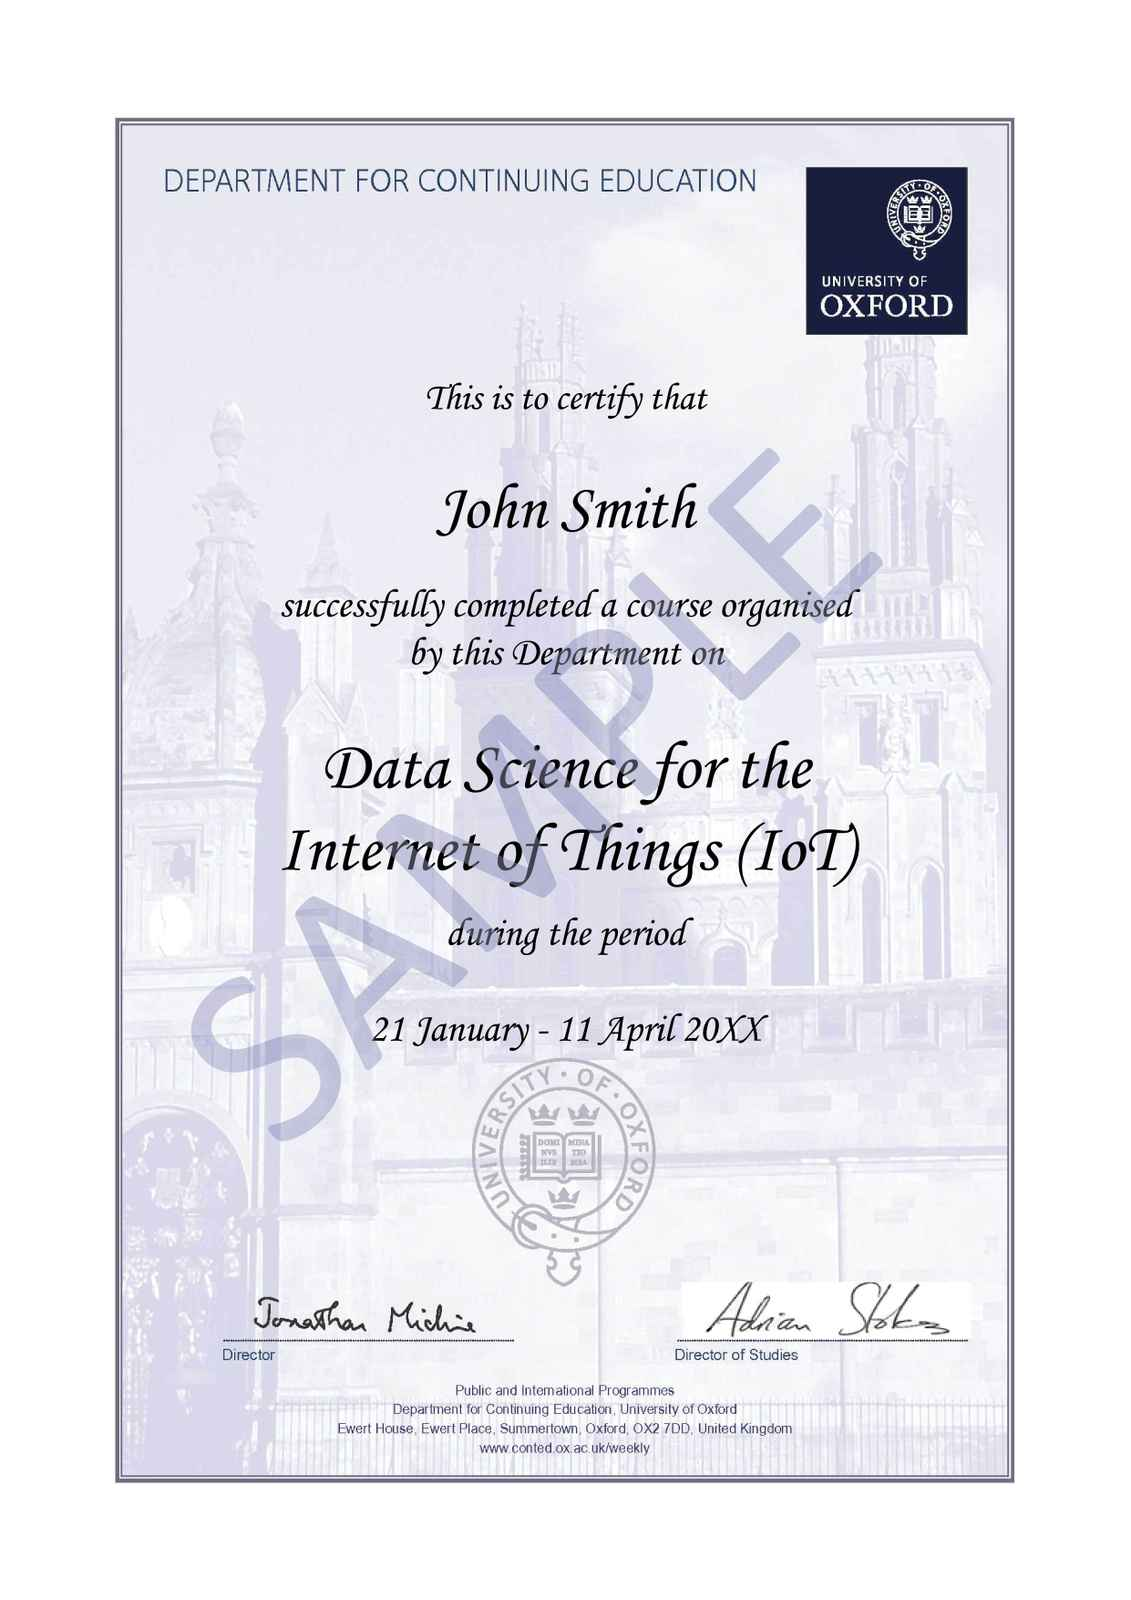 Data science for the internet of things iot oxford university participants who satisfy the course requirements will receive a certificate of attendance the sample shown is an illustration only and the wording will fandeluxe Choice Image